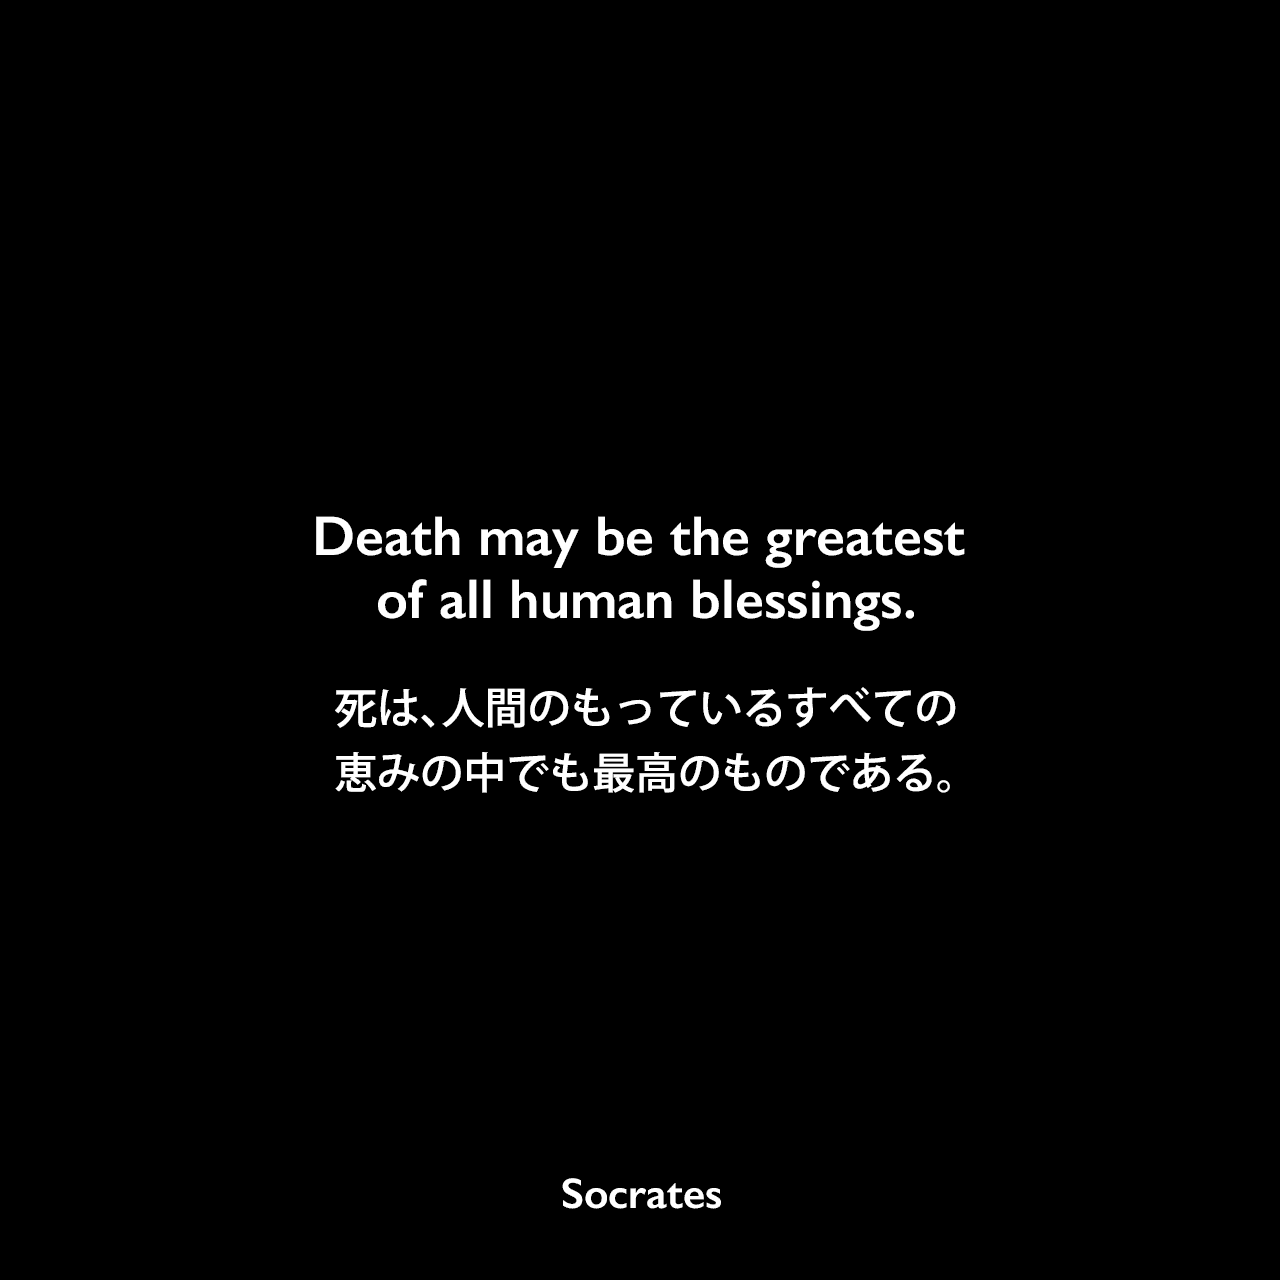 Death may be the greatest of all human blessings.死は、人間のもっているすべての恵みの中でも最高のものである。Socrates